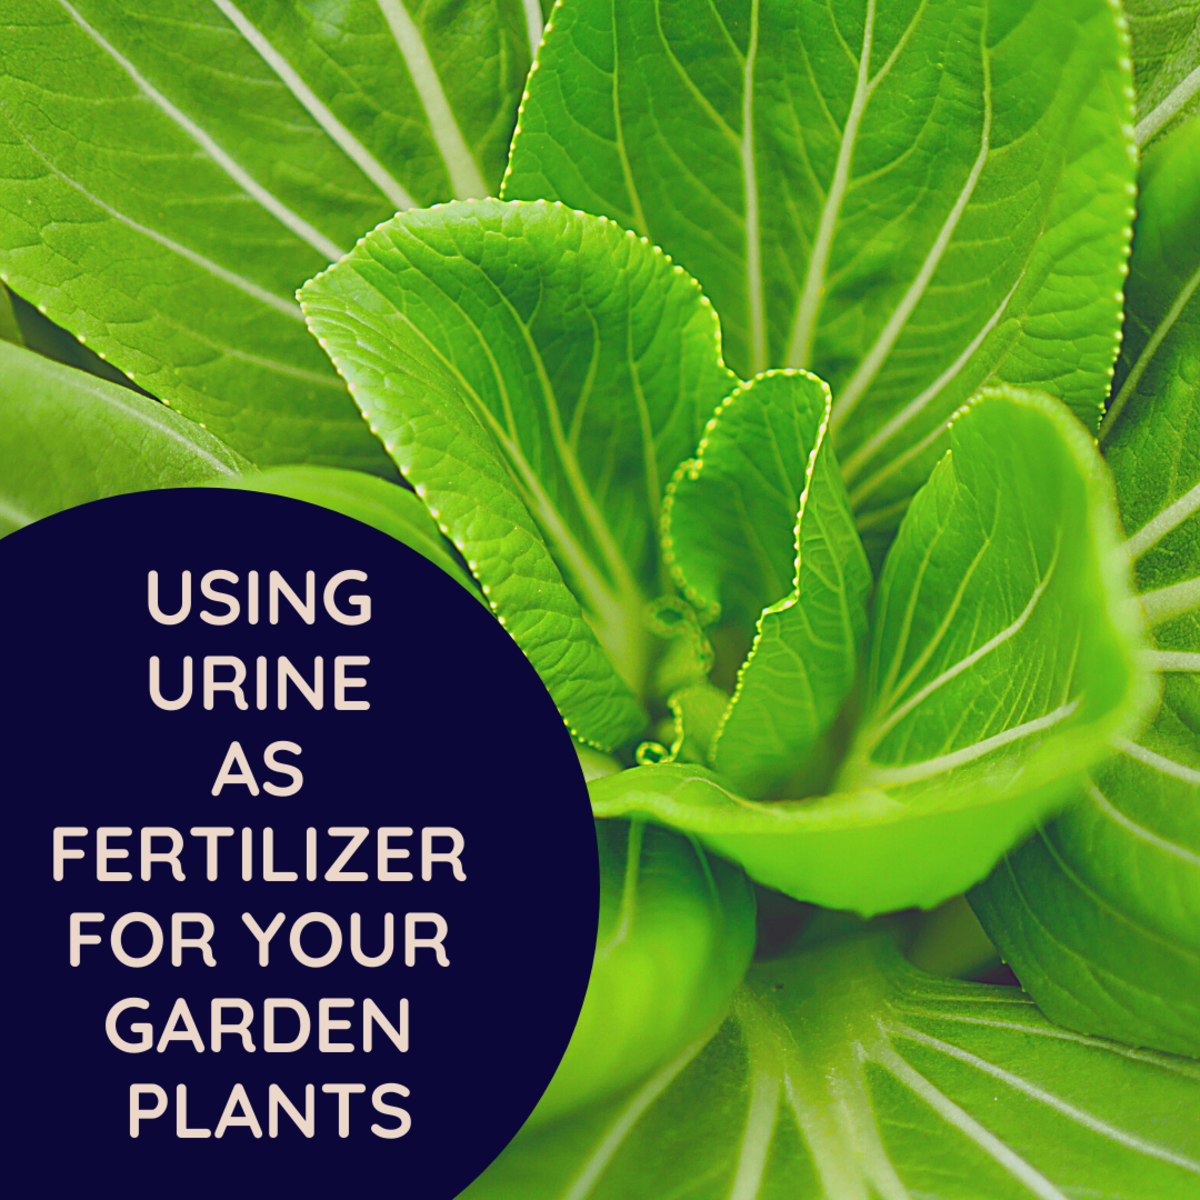 Can You Use Urine to Fertilize Plants?